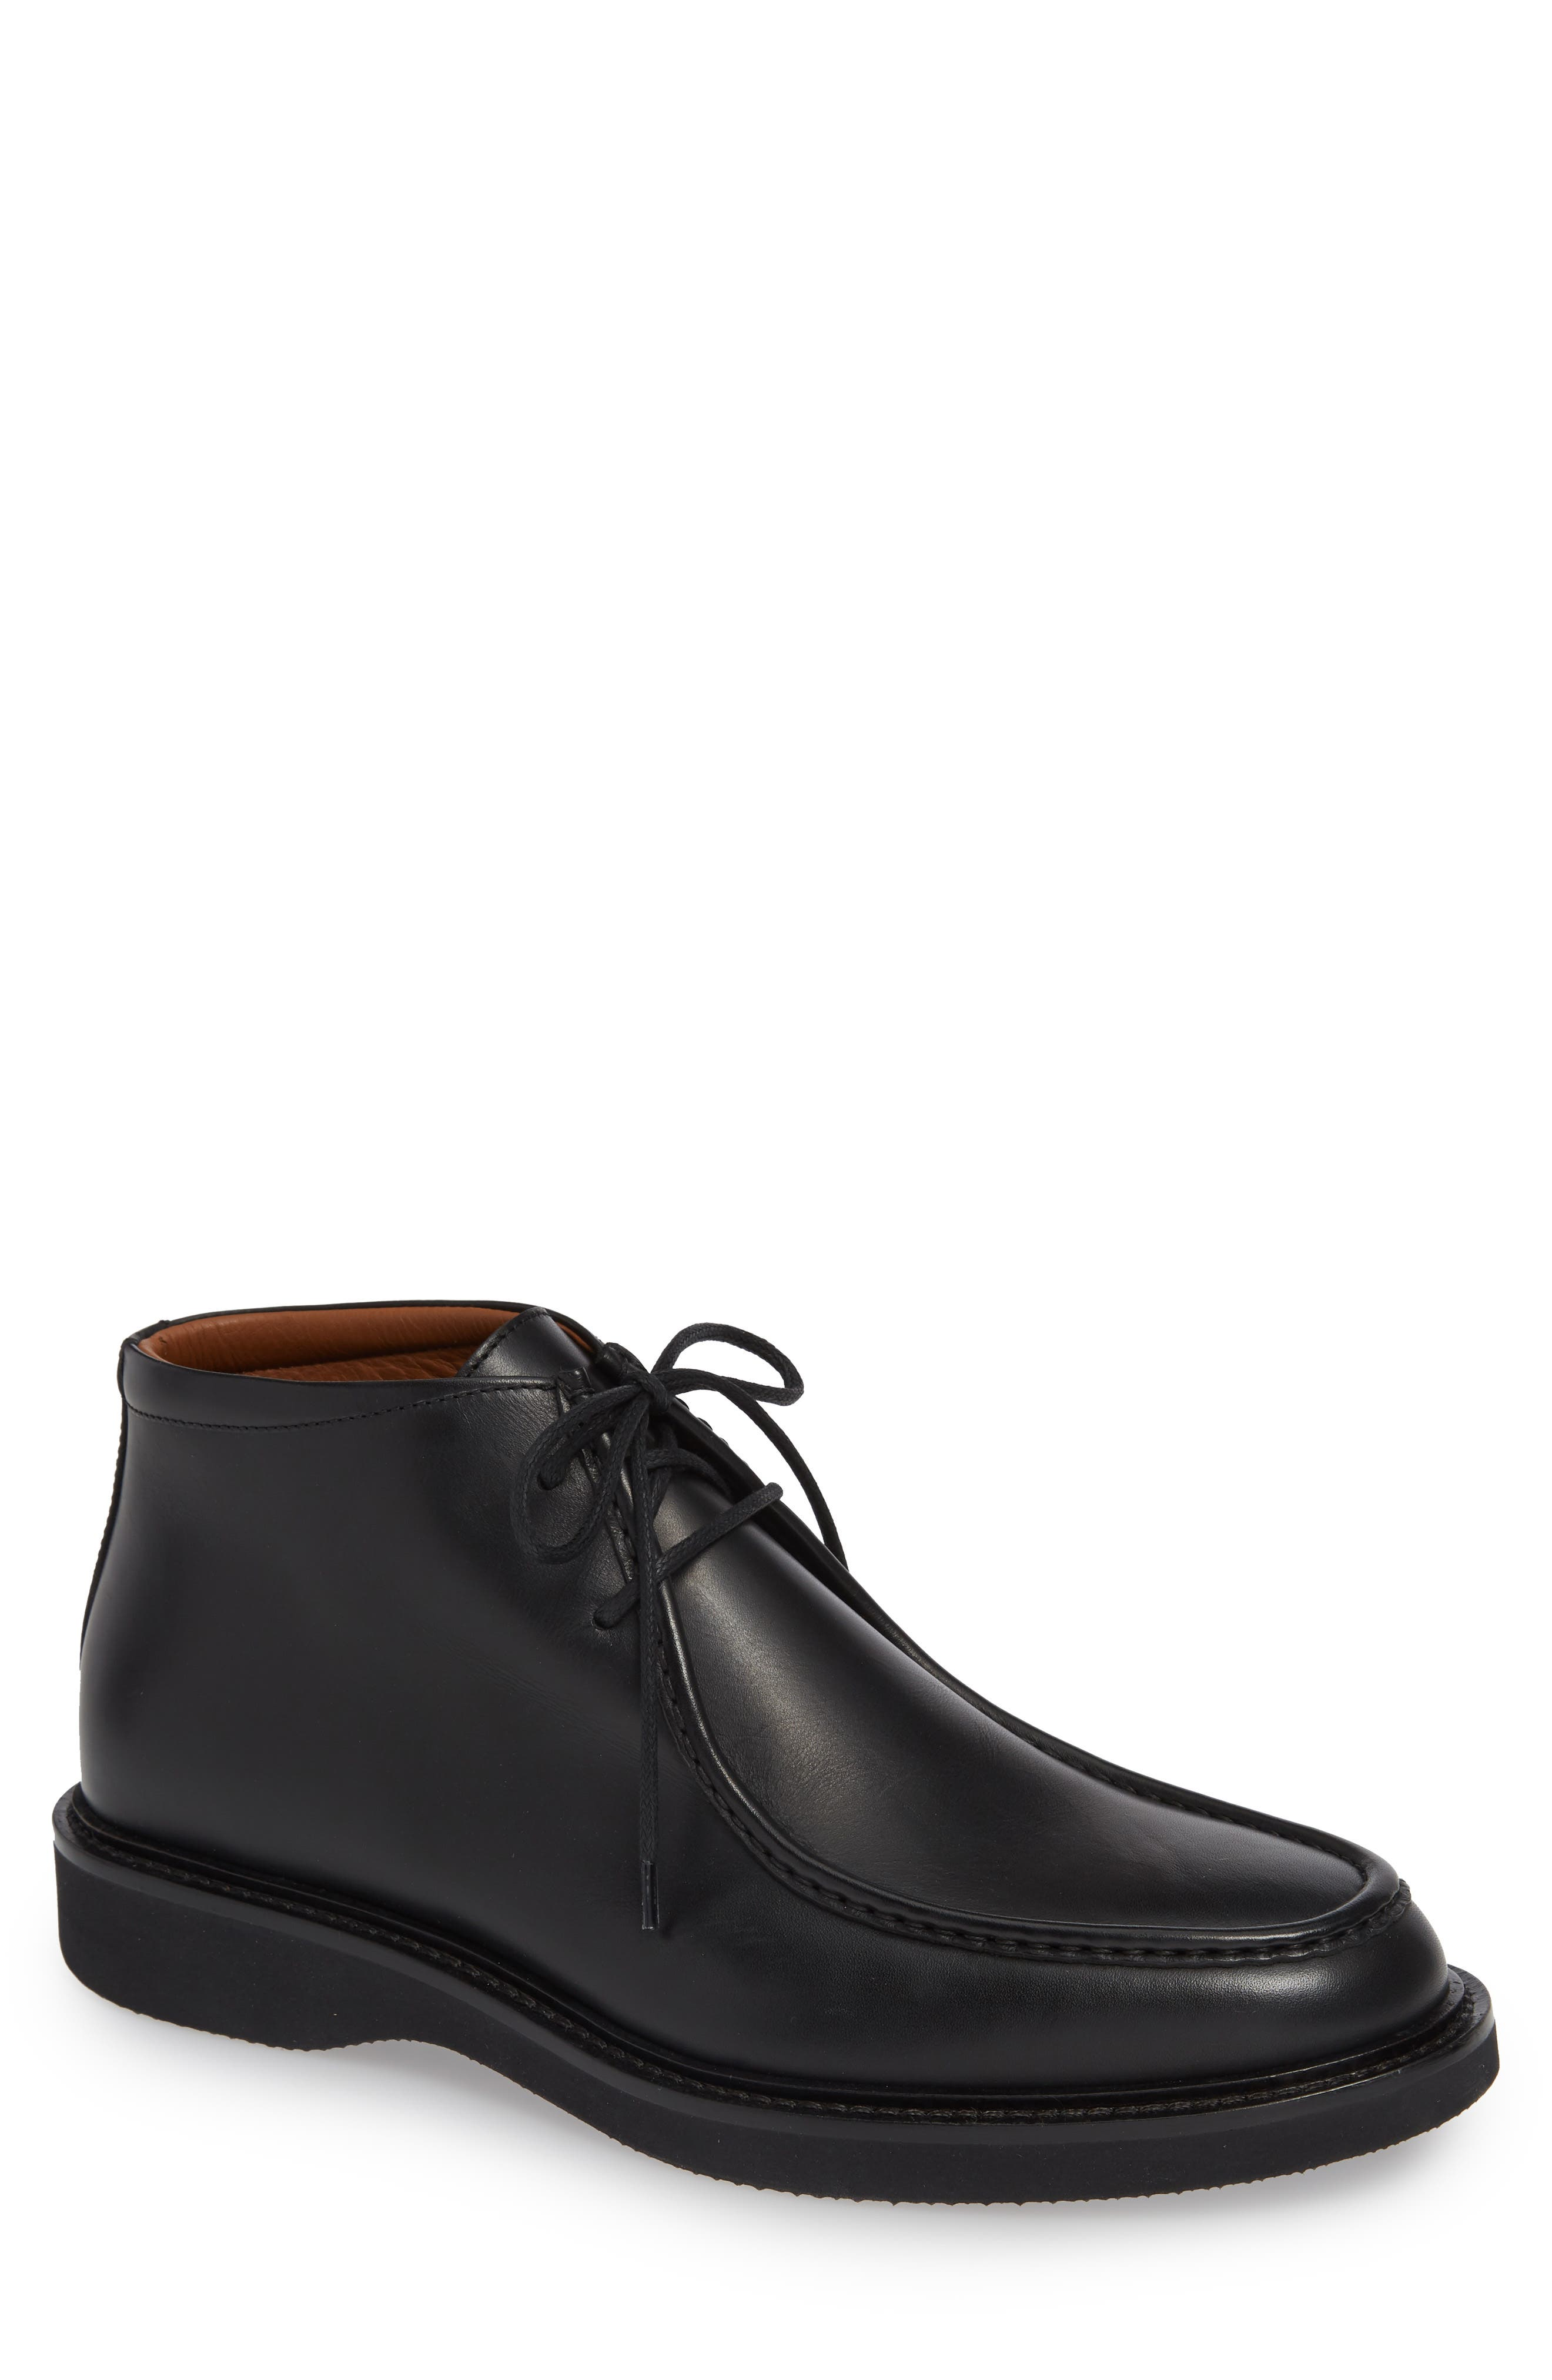 Kyle Weatherproof Chukka Boot,                             Main thumbnail 1, color,                             BLACK LEATHER